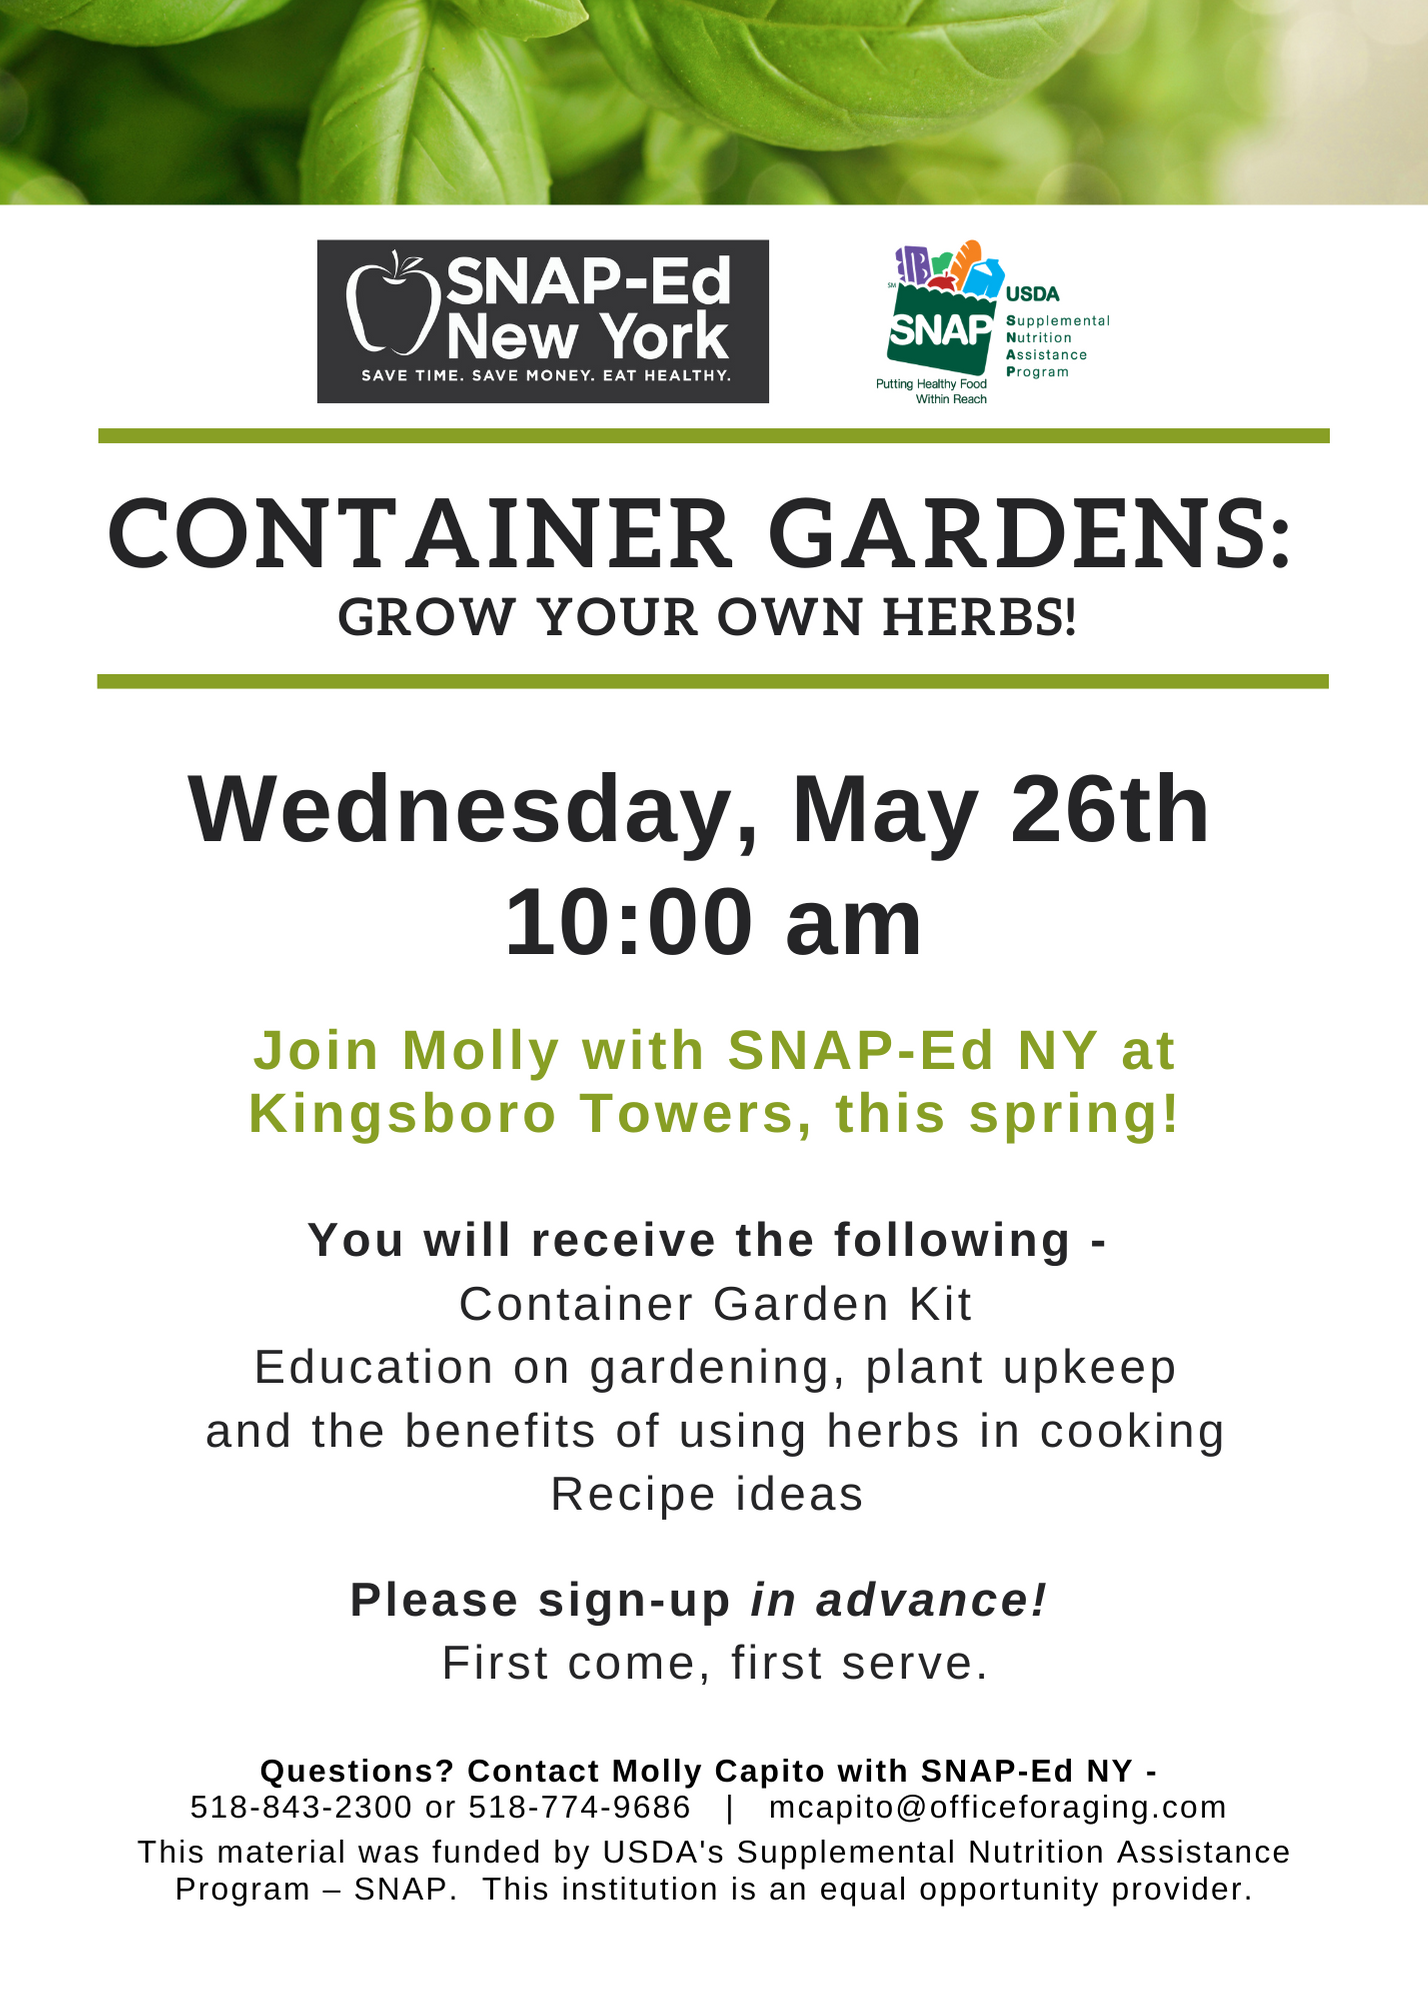 Container Gardens Kingsboro